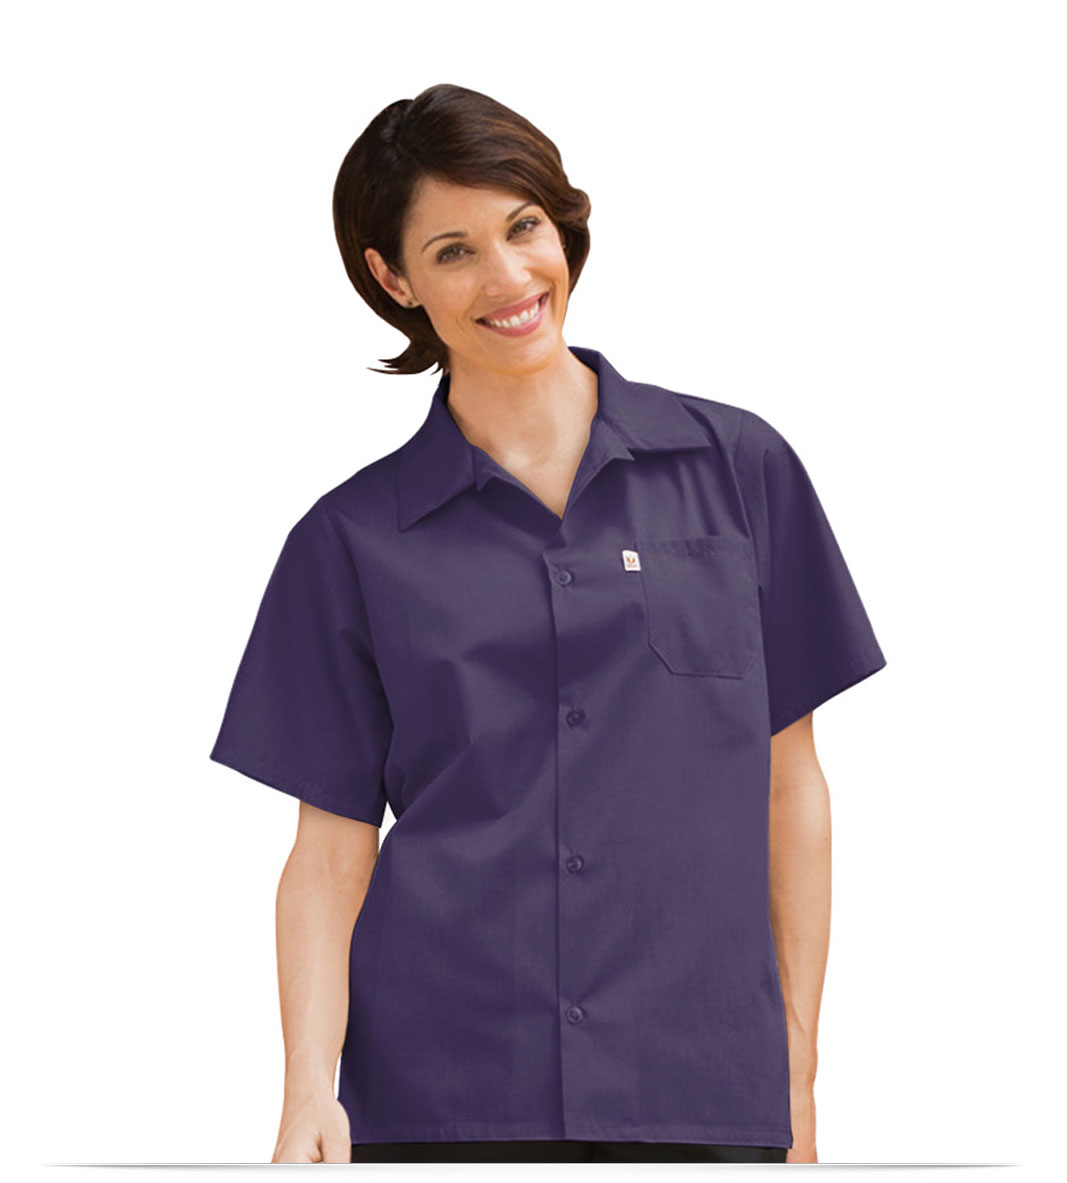 Personalized Cook Shirt with Pocket